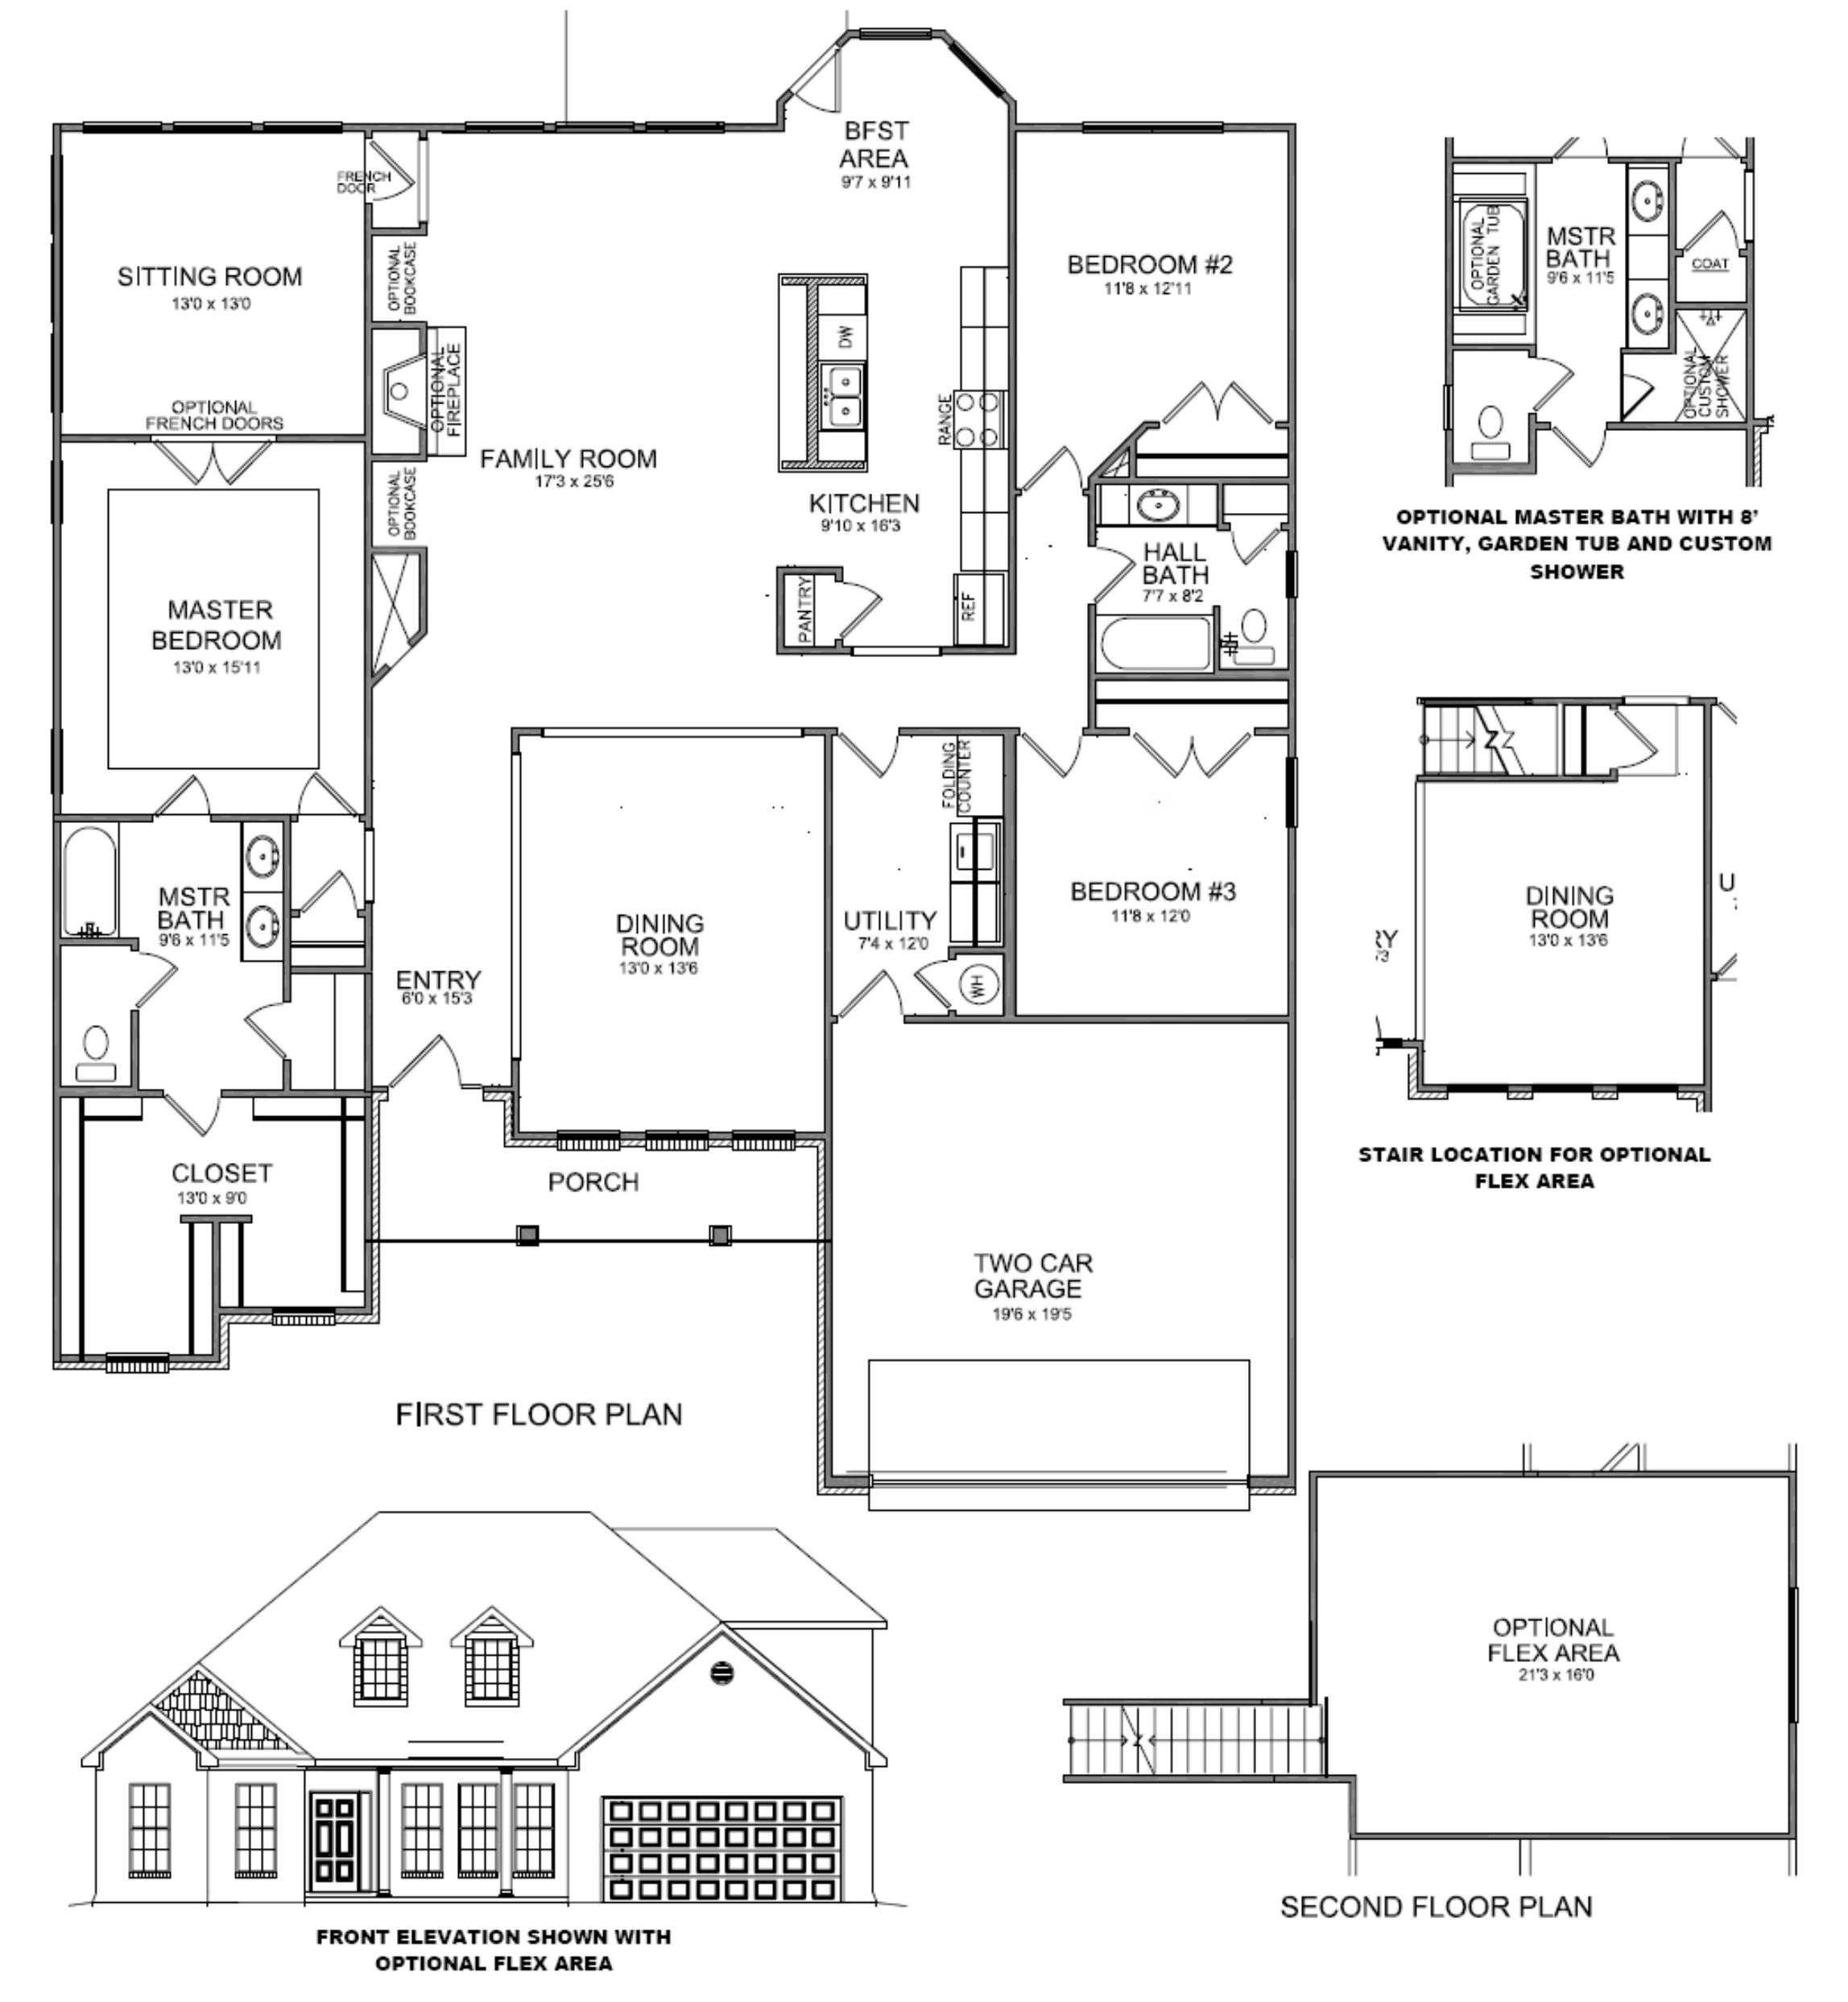 Ricochet Small House Floor Plan Under 500 Sq Ft besides Recipe Black Bean Pasta With Butternut Squash Cream Sauce together with 2 together with 5 Best Red Refrigerator besides Listings Hill County. on extra large kitchen pantry